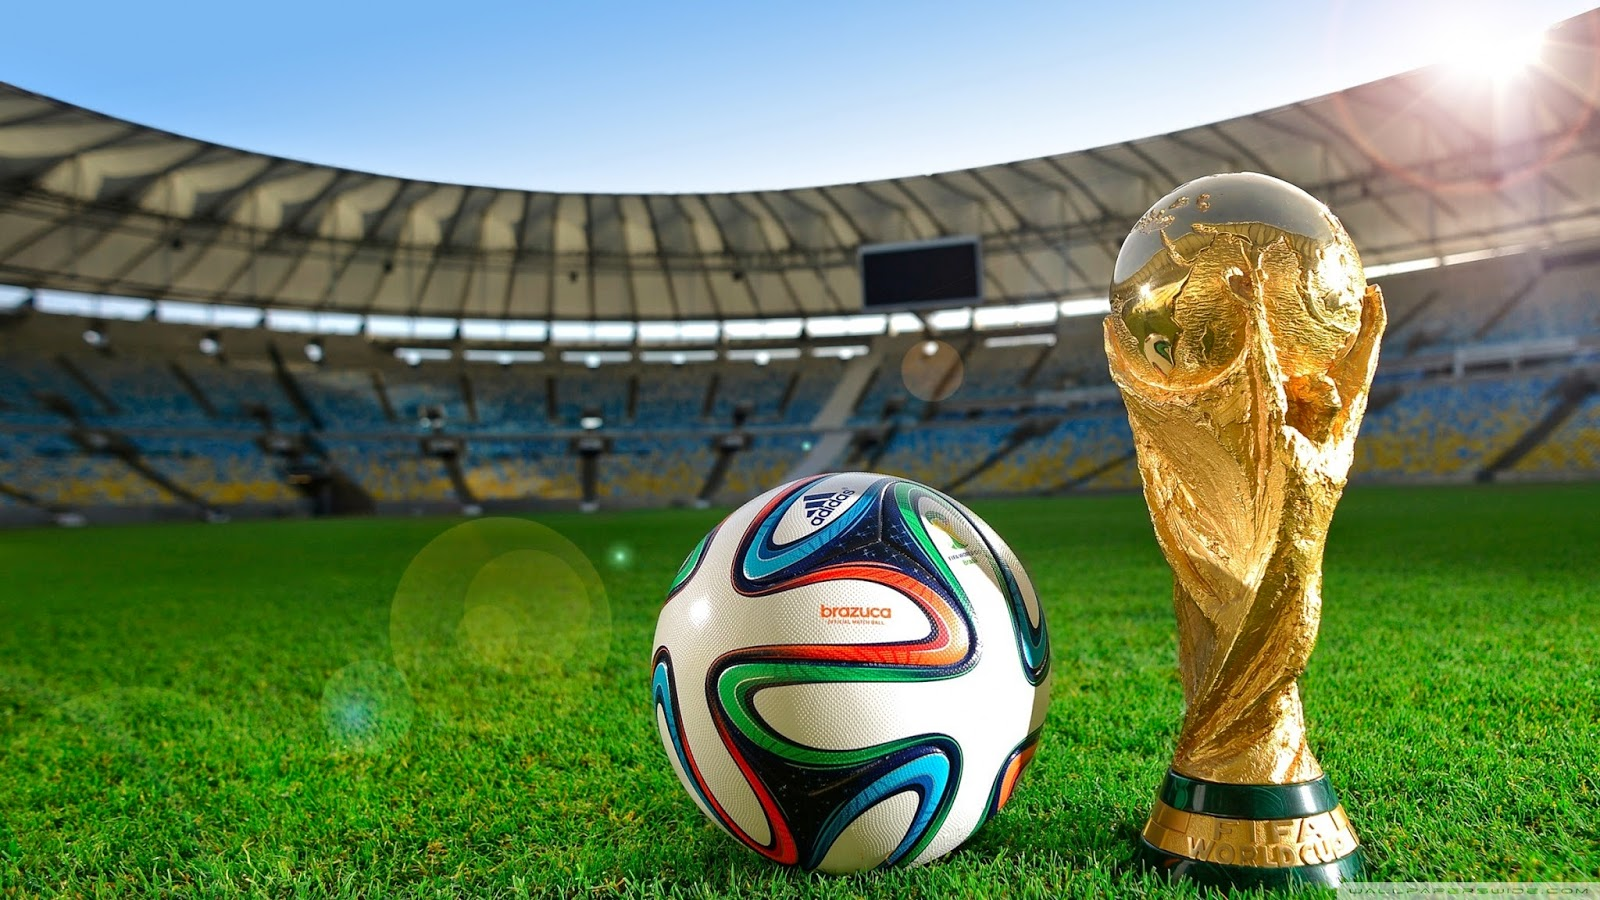 hinh-nen-world-cup-2014-cup-vang